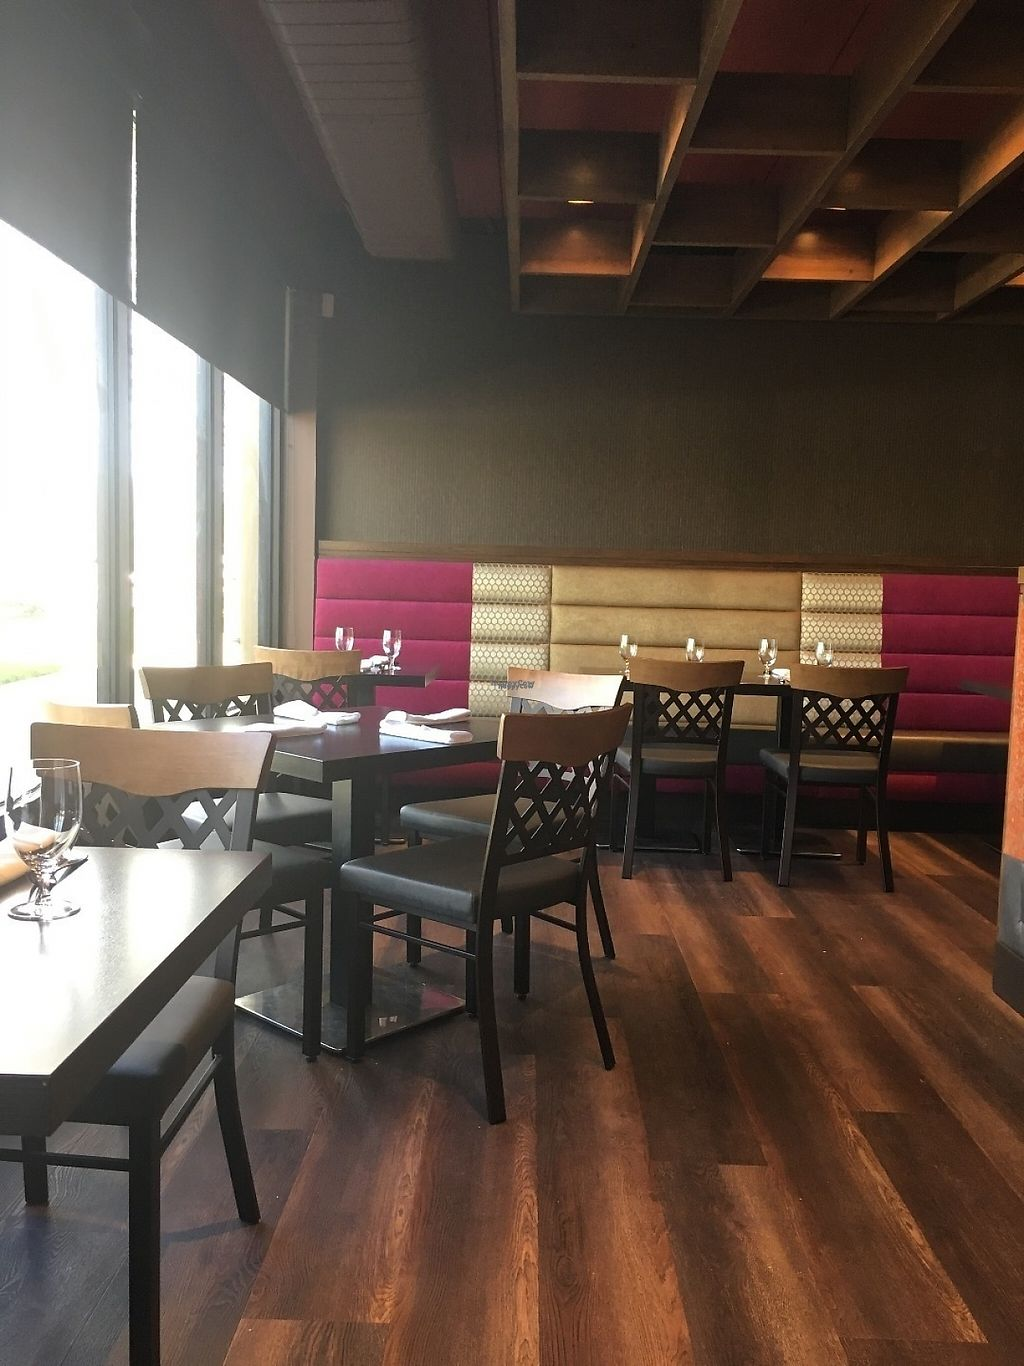 """Photo of Niagara's Finest Thai  by <a href=""""/members/profile/Brena"""">Brena</a> <br/>Restaurant Interior 2 <br/> April 26, 2017  - <a href='/contact/abuse/image/90950/252816'>Report</a>"""